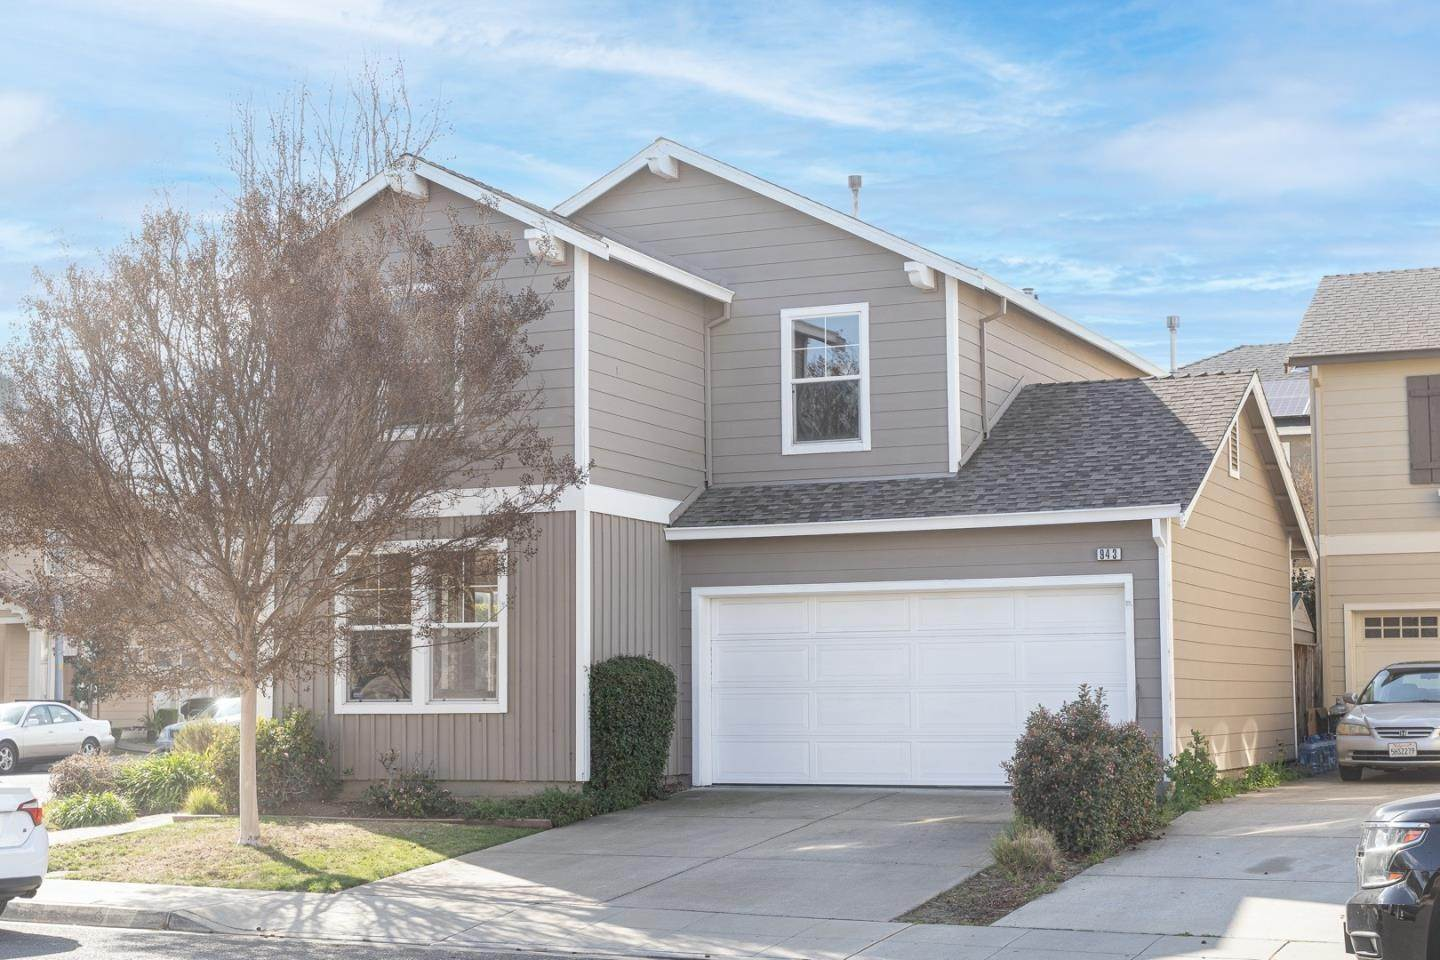 Single Family Homes for Sale at 943 Baines Street East Palo Alto, California 94303 United States